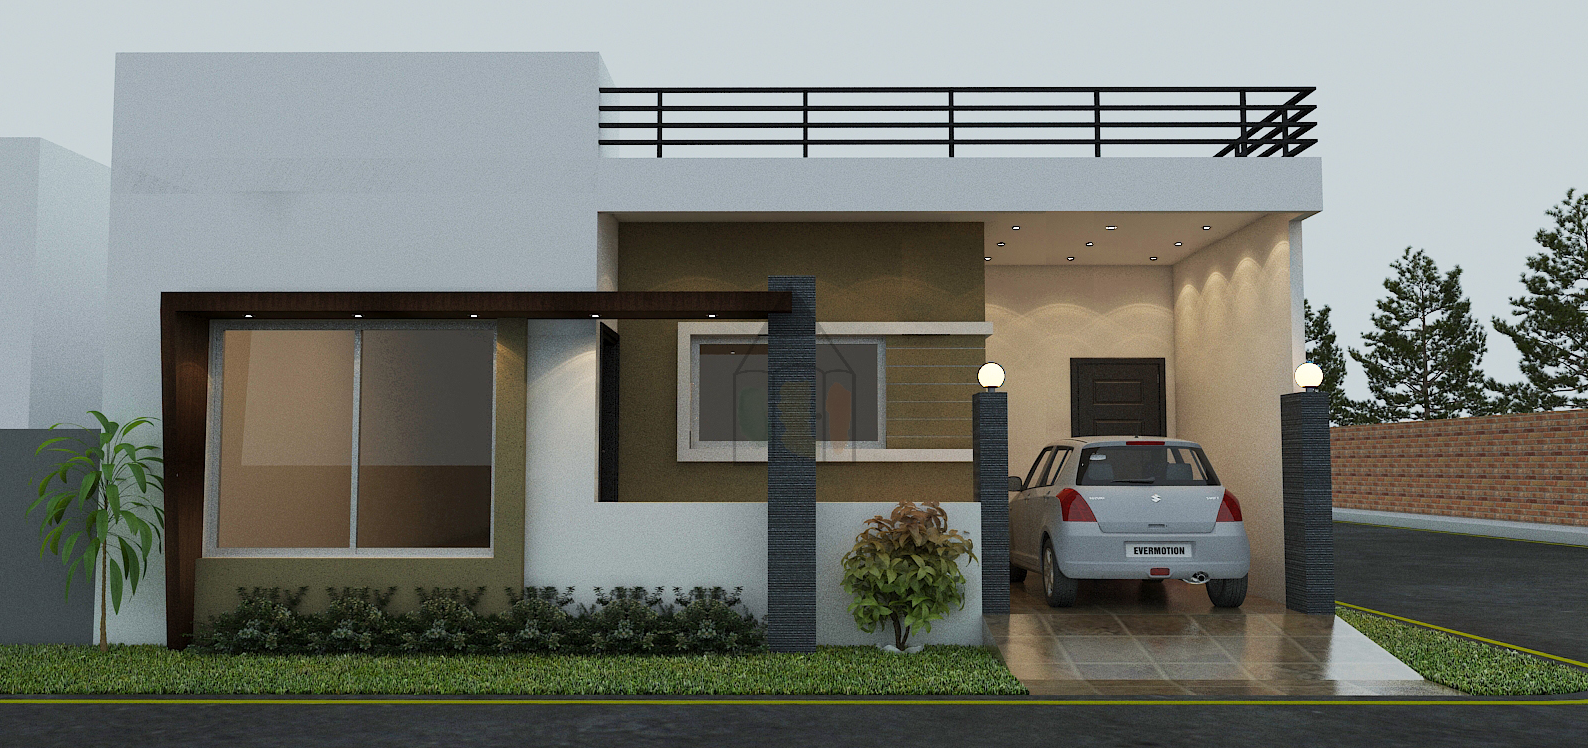 Single Storey House Design Where The Home Has Two Bedrooms